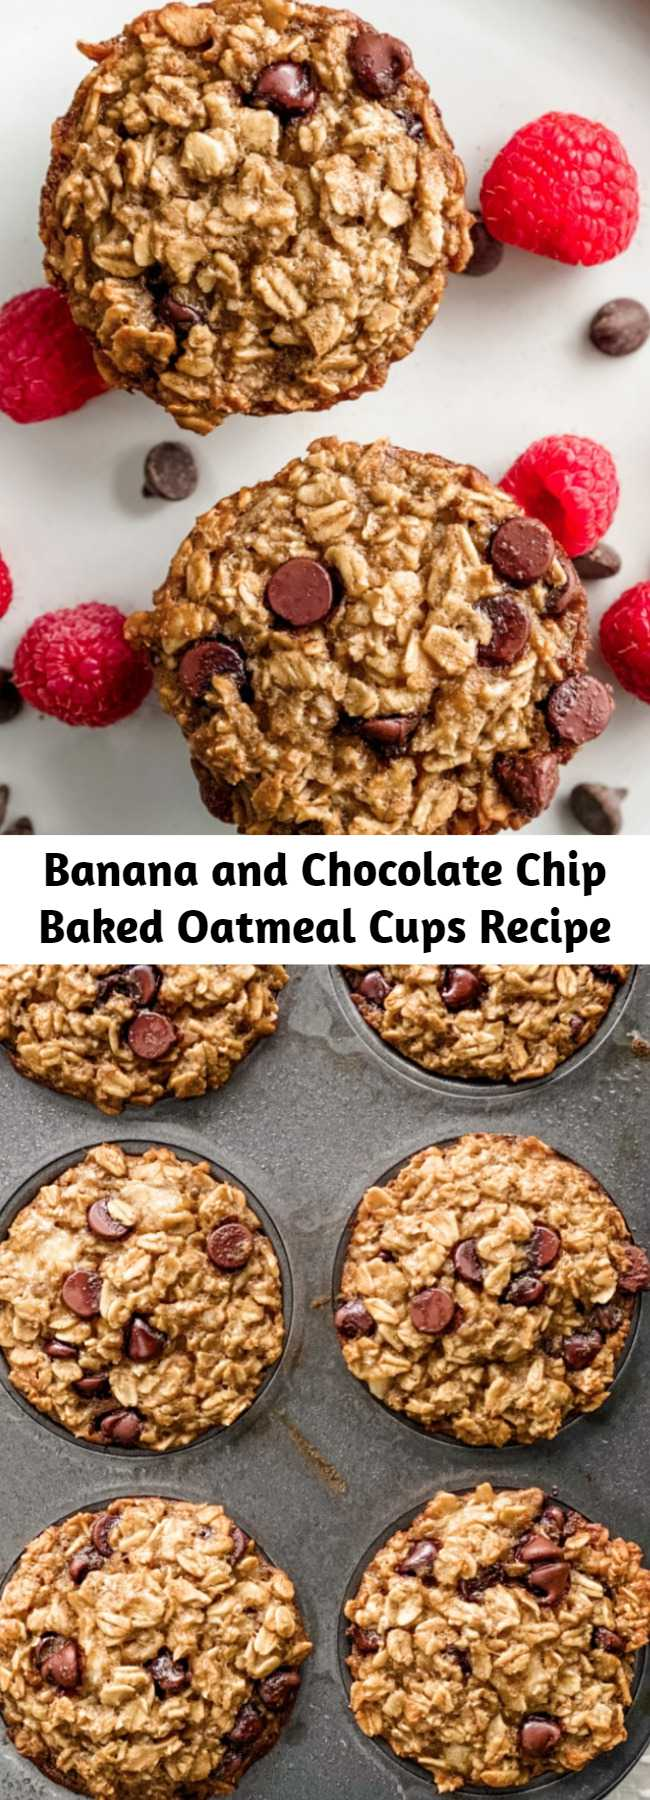 Banana and Chocolate Chip Baked Oatmeal Cups Recipe - At just 200 calories and 6 Weight Watcher points, you can meal prep these delicious Banana and Chocolate Chip Oatmeal Cups for breakfast all week!